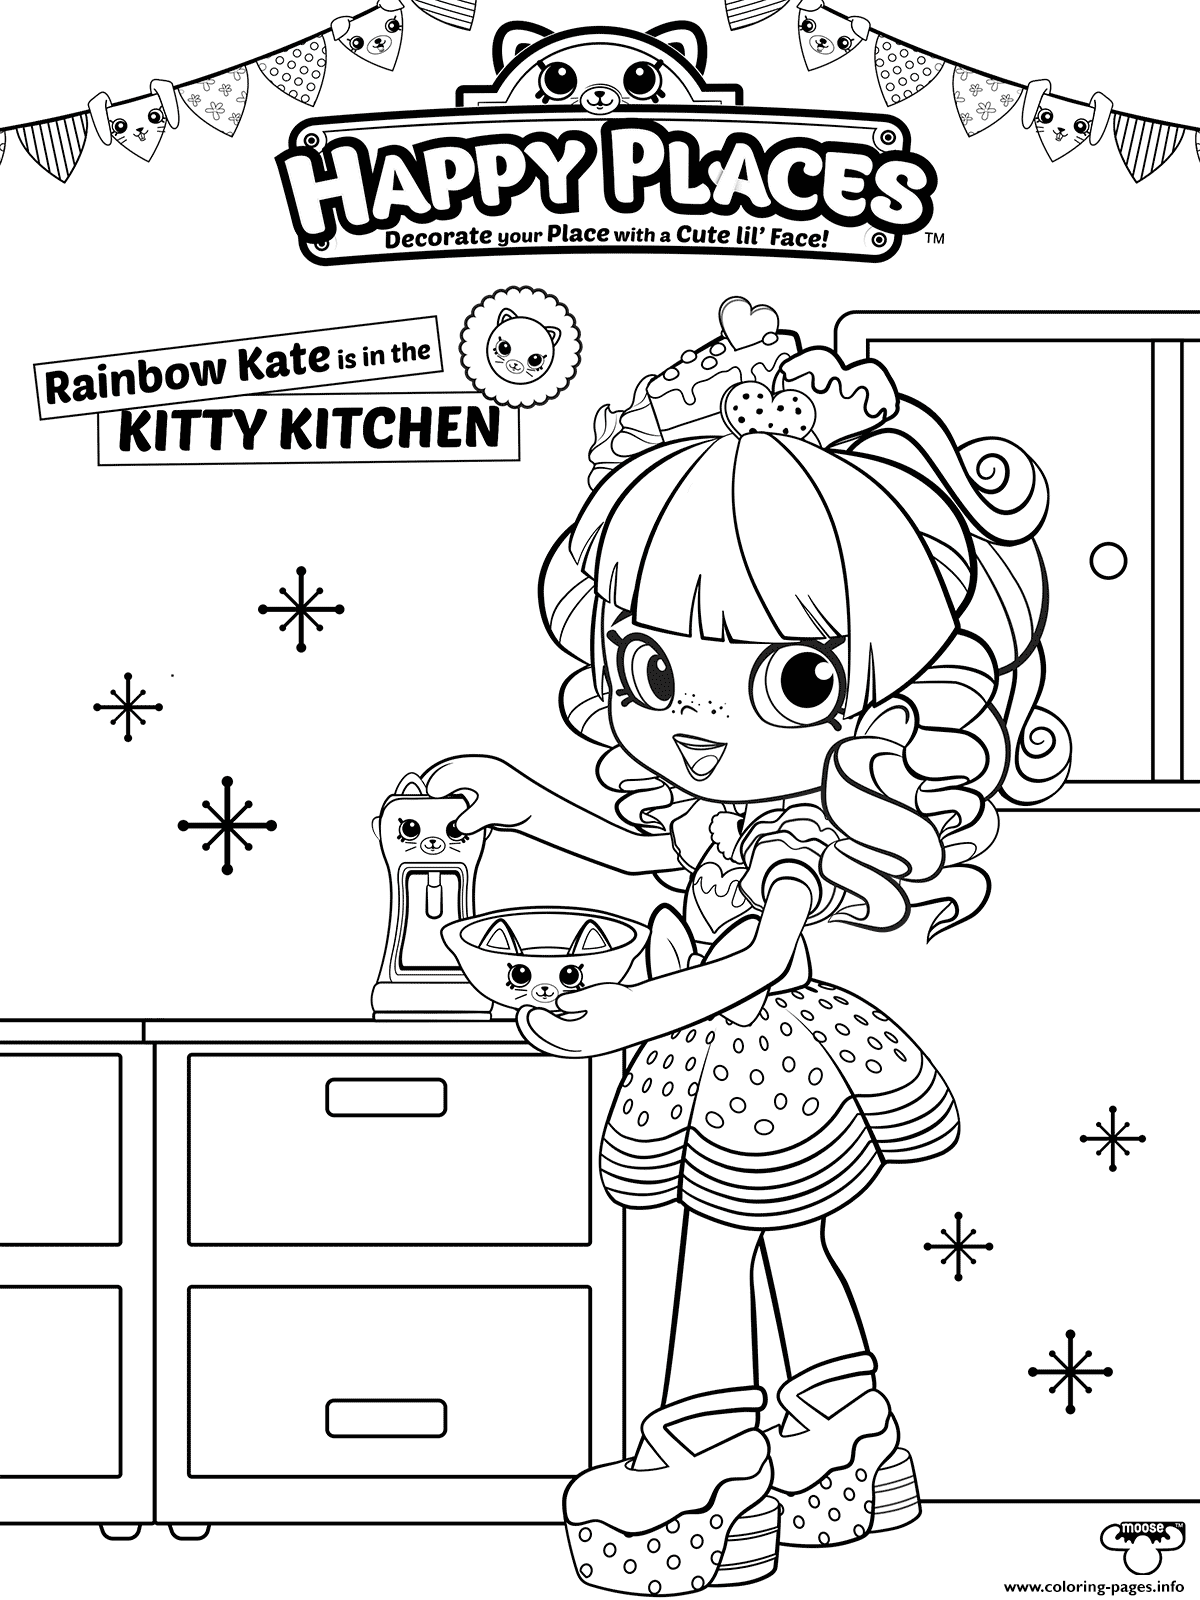 shopkins shoppies dolls coloring pages - photo#29